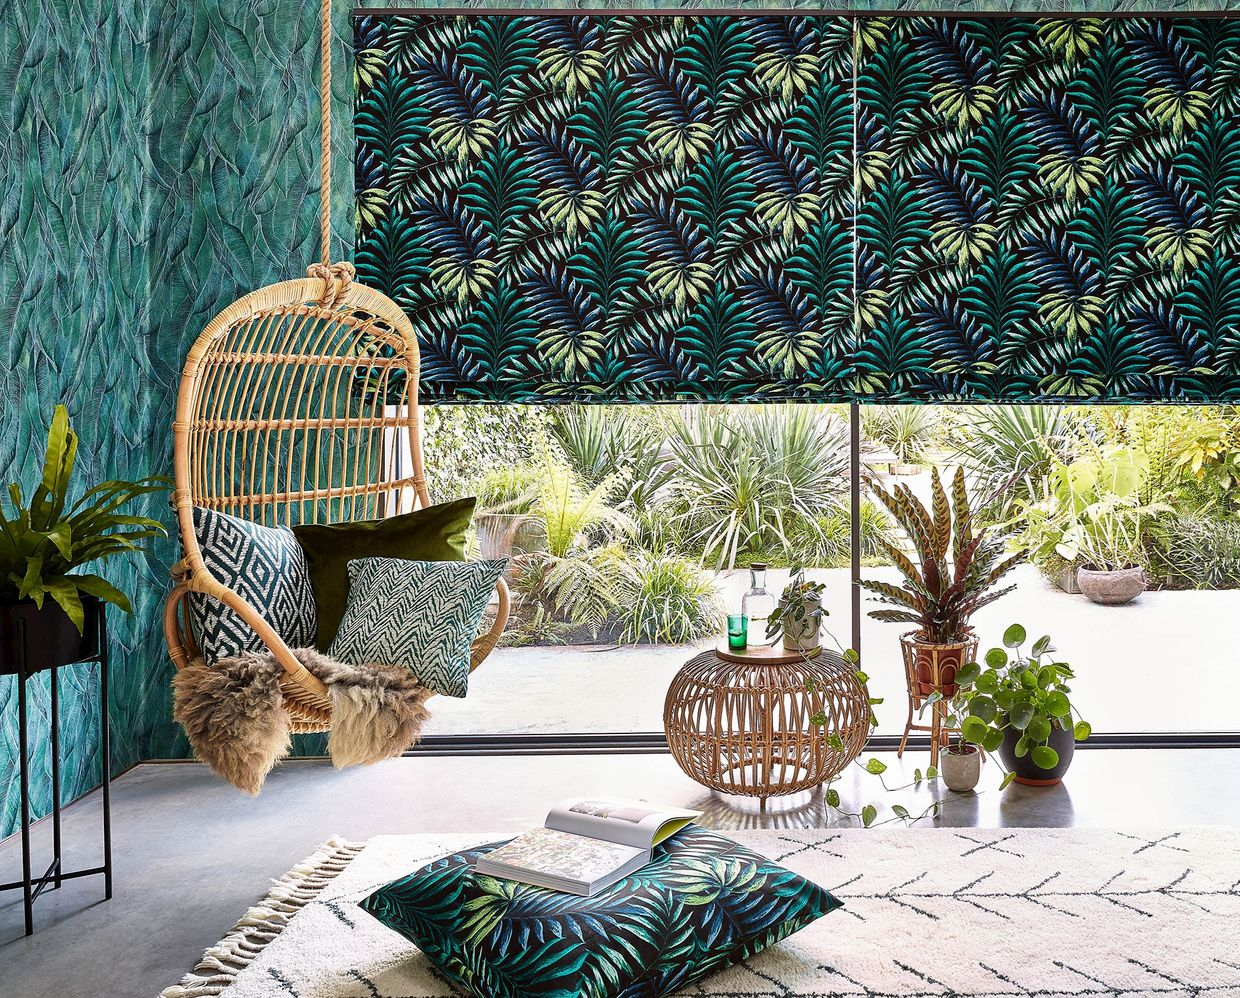 Green and yellow  printed roman blinds, patterned and printed cushions on leisure hanging chair